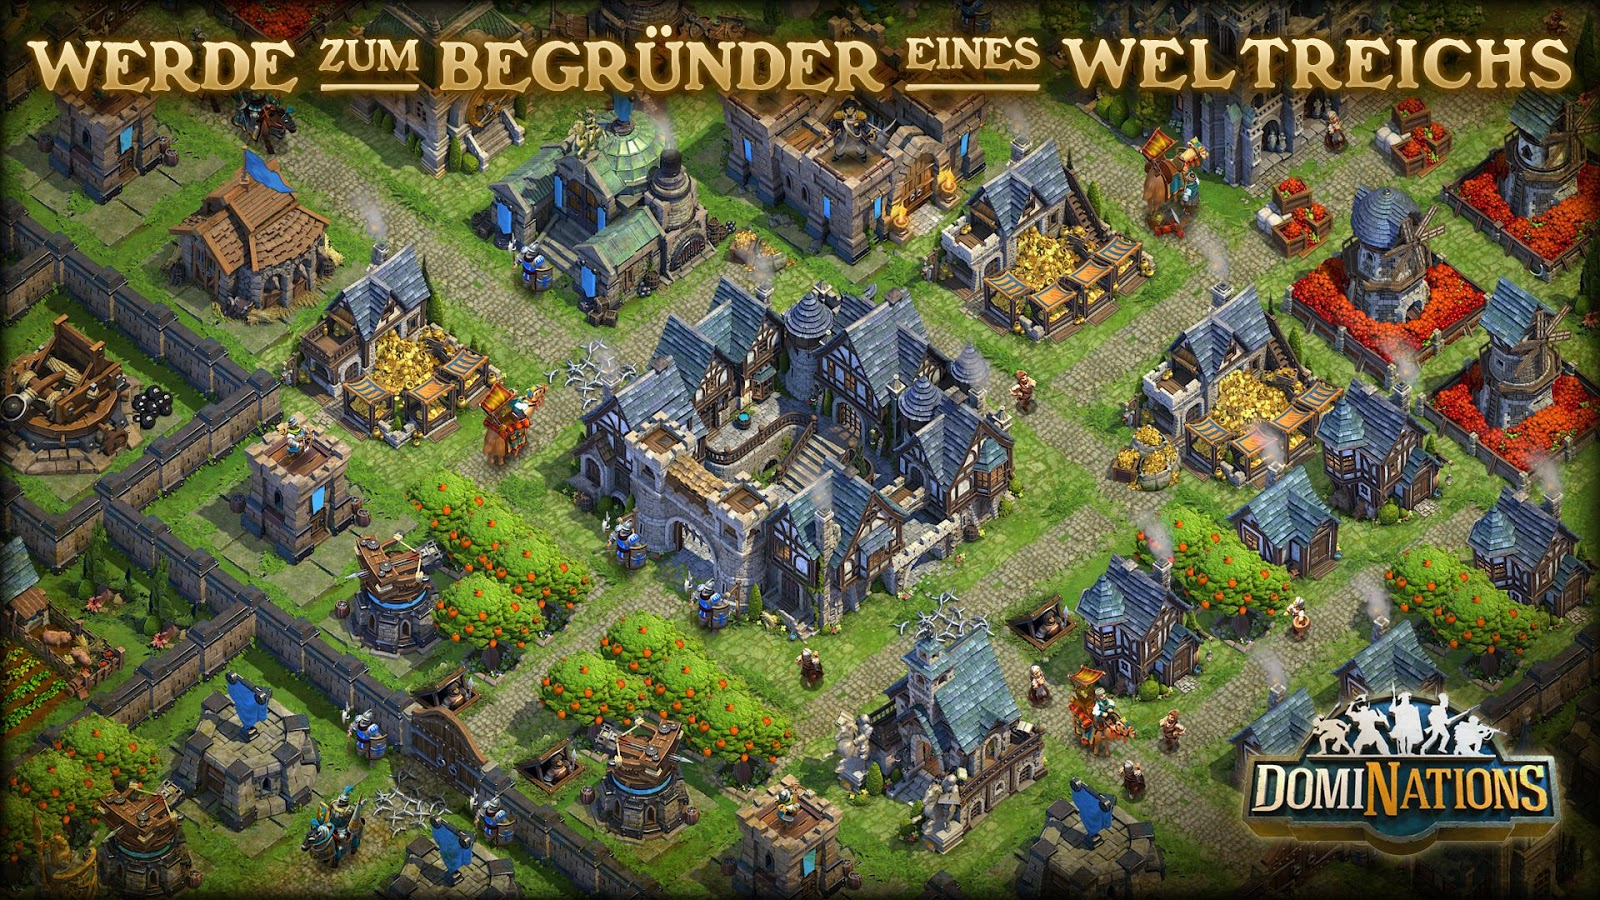 dominations-tipps-und-hilfe-fuer-einsteiger-Strategie-iphone-ipad-tipps-tricks-cheats-android-ios-windows-apps-hack-spiel-weltwunder-weltreich-game-20